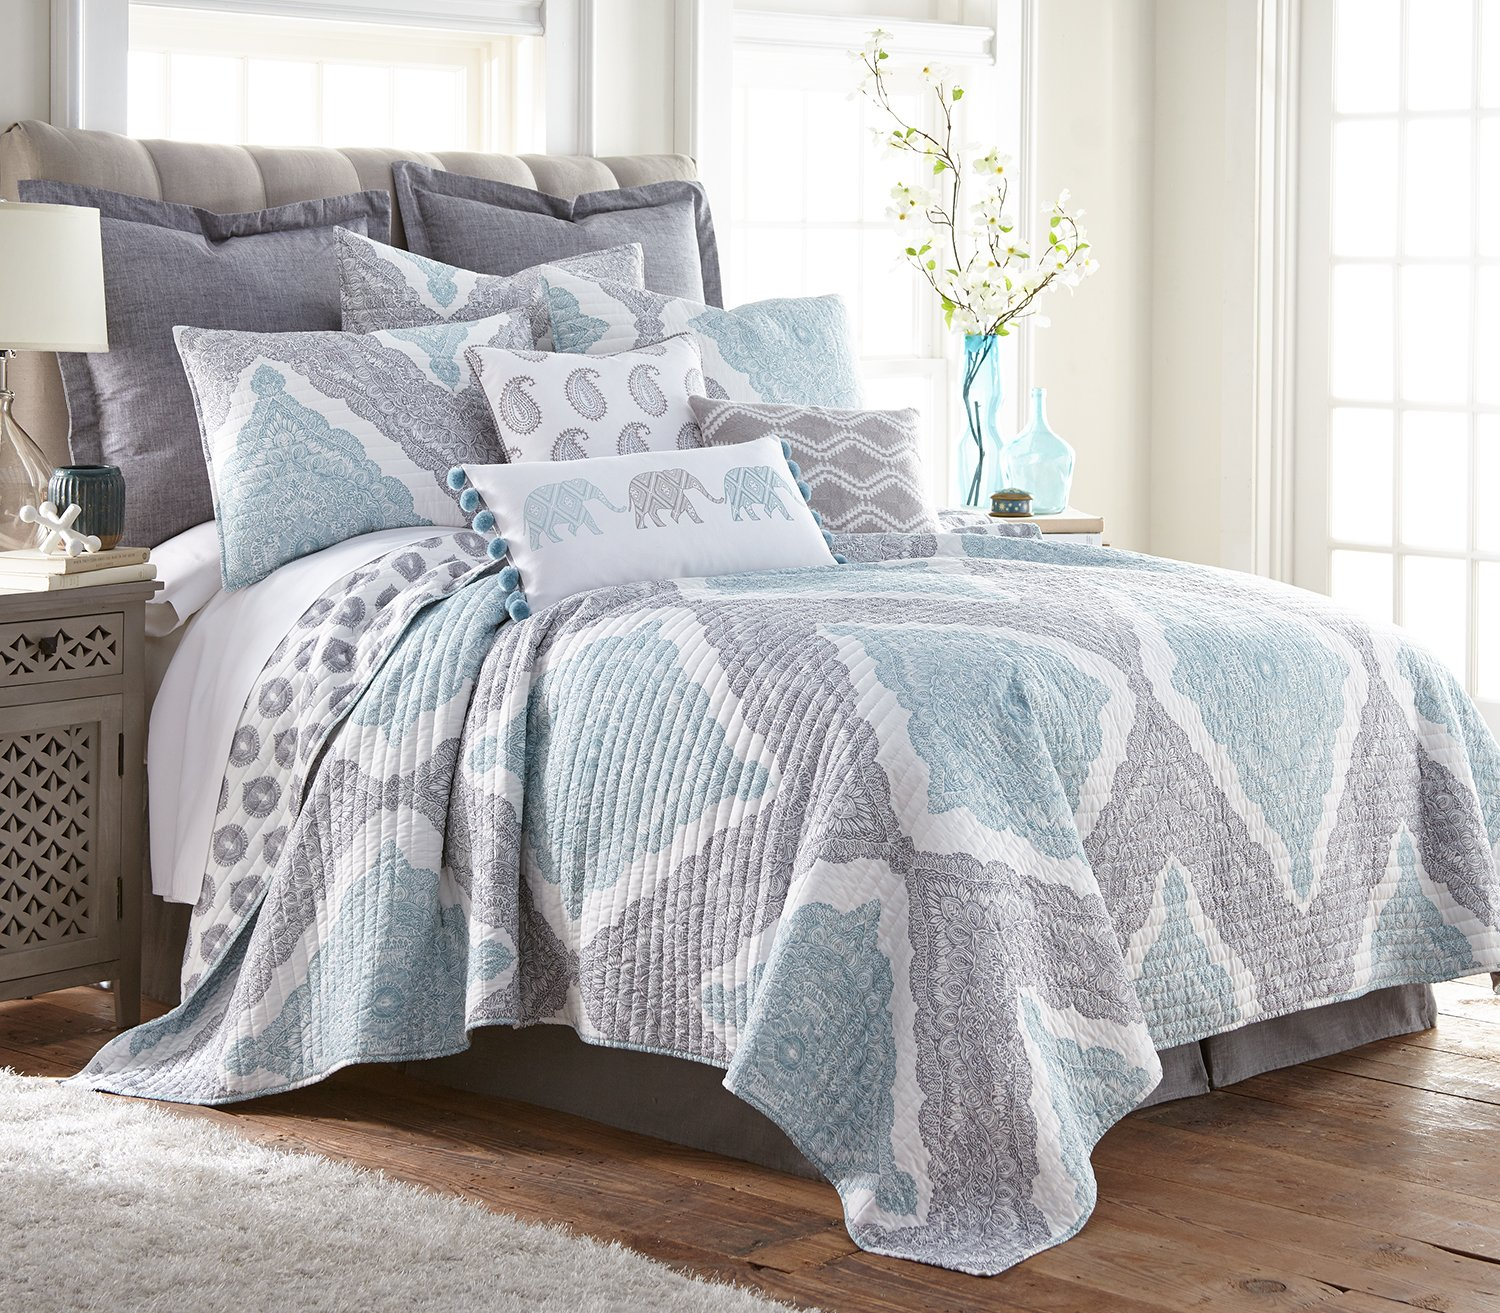 Levtex Montclair Twin Cotton Quilt Set, Grey, Spa, White, Paisley